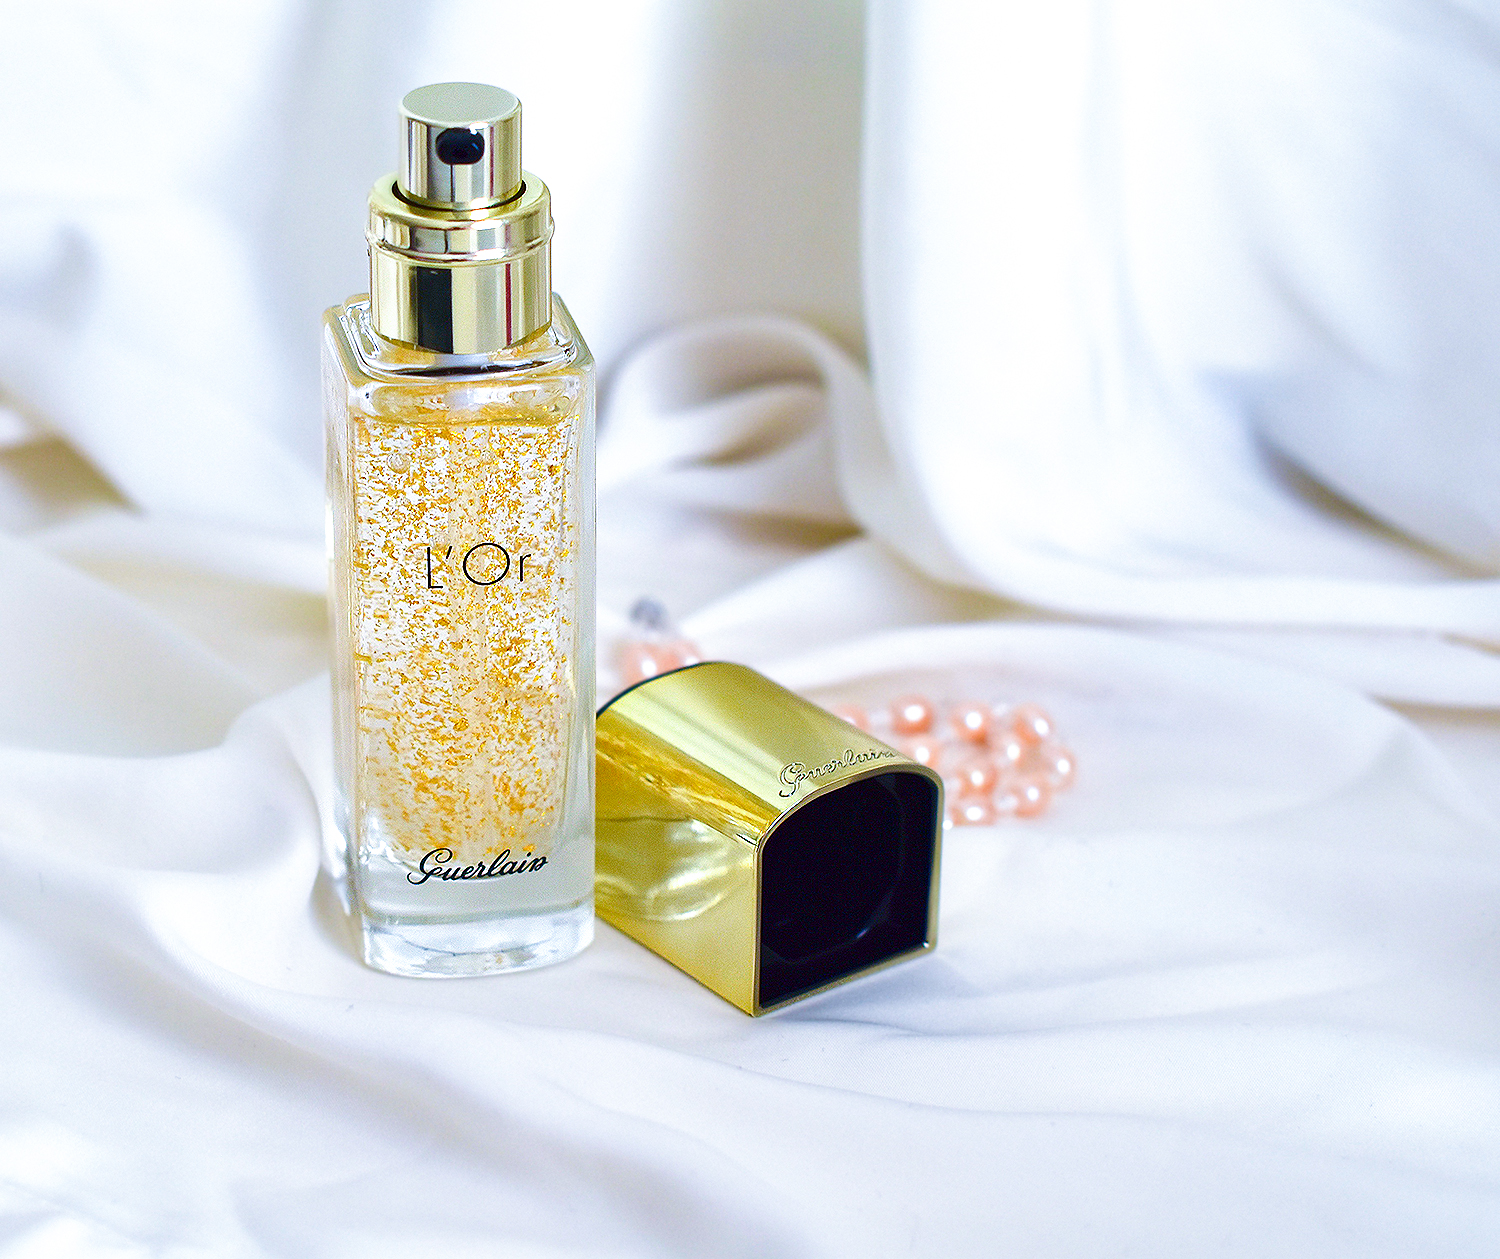 Guerlain L'Or Pure Radiance Face Primer, beauty blogger